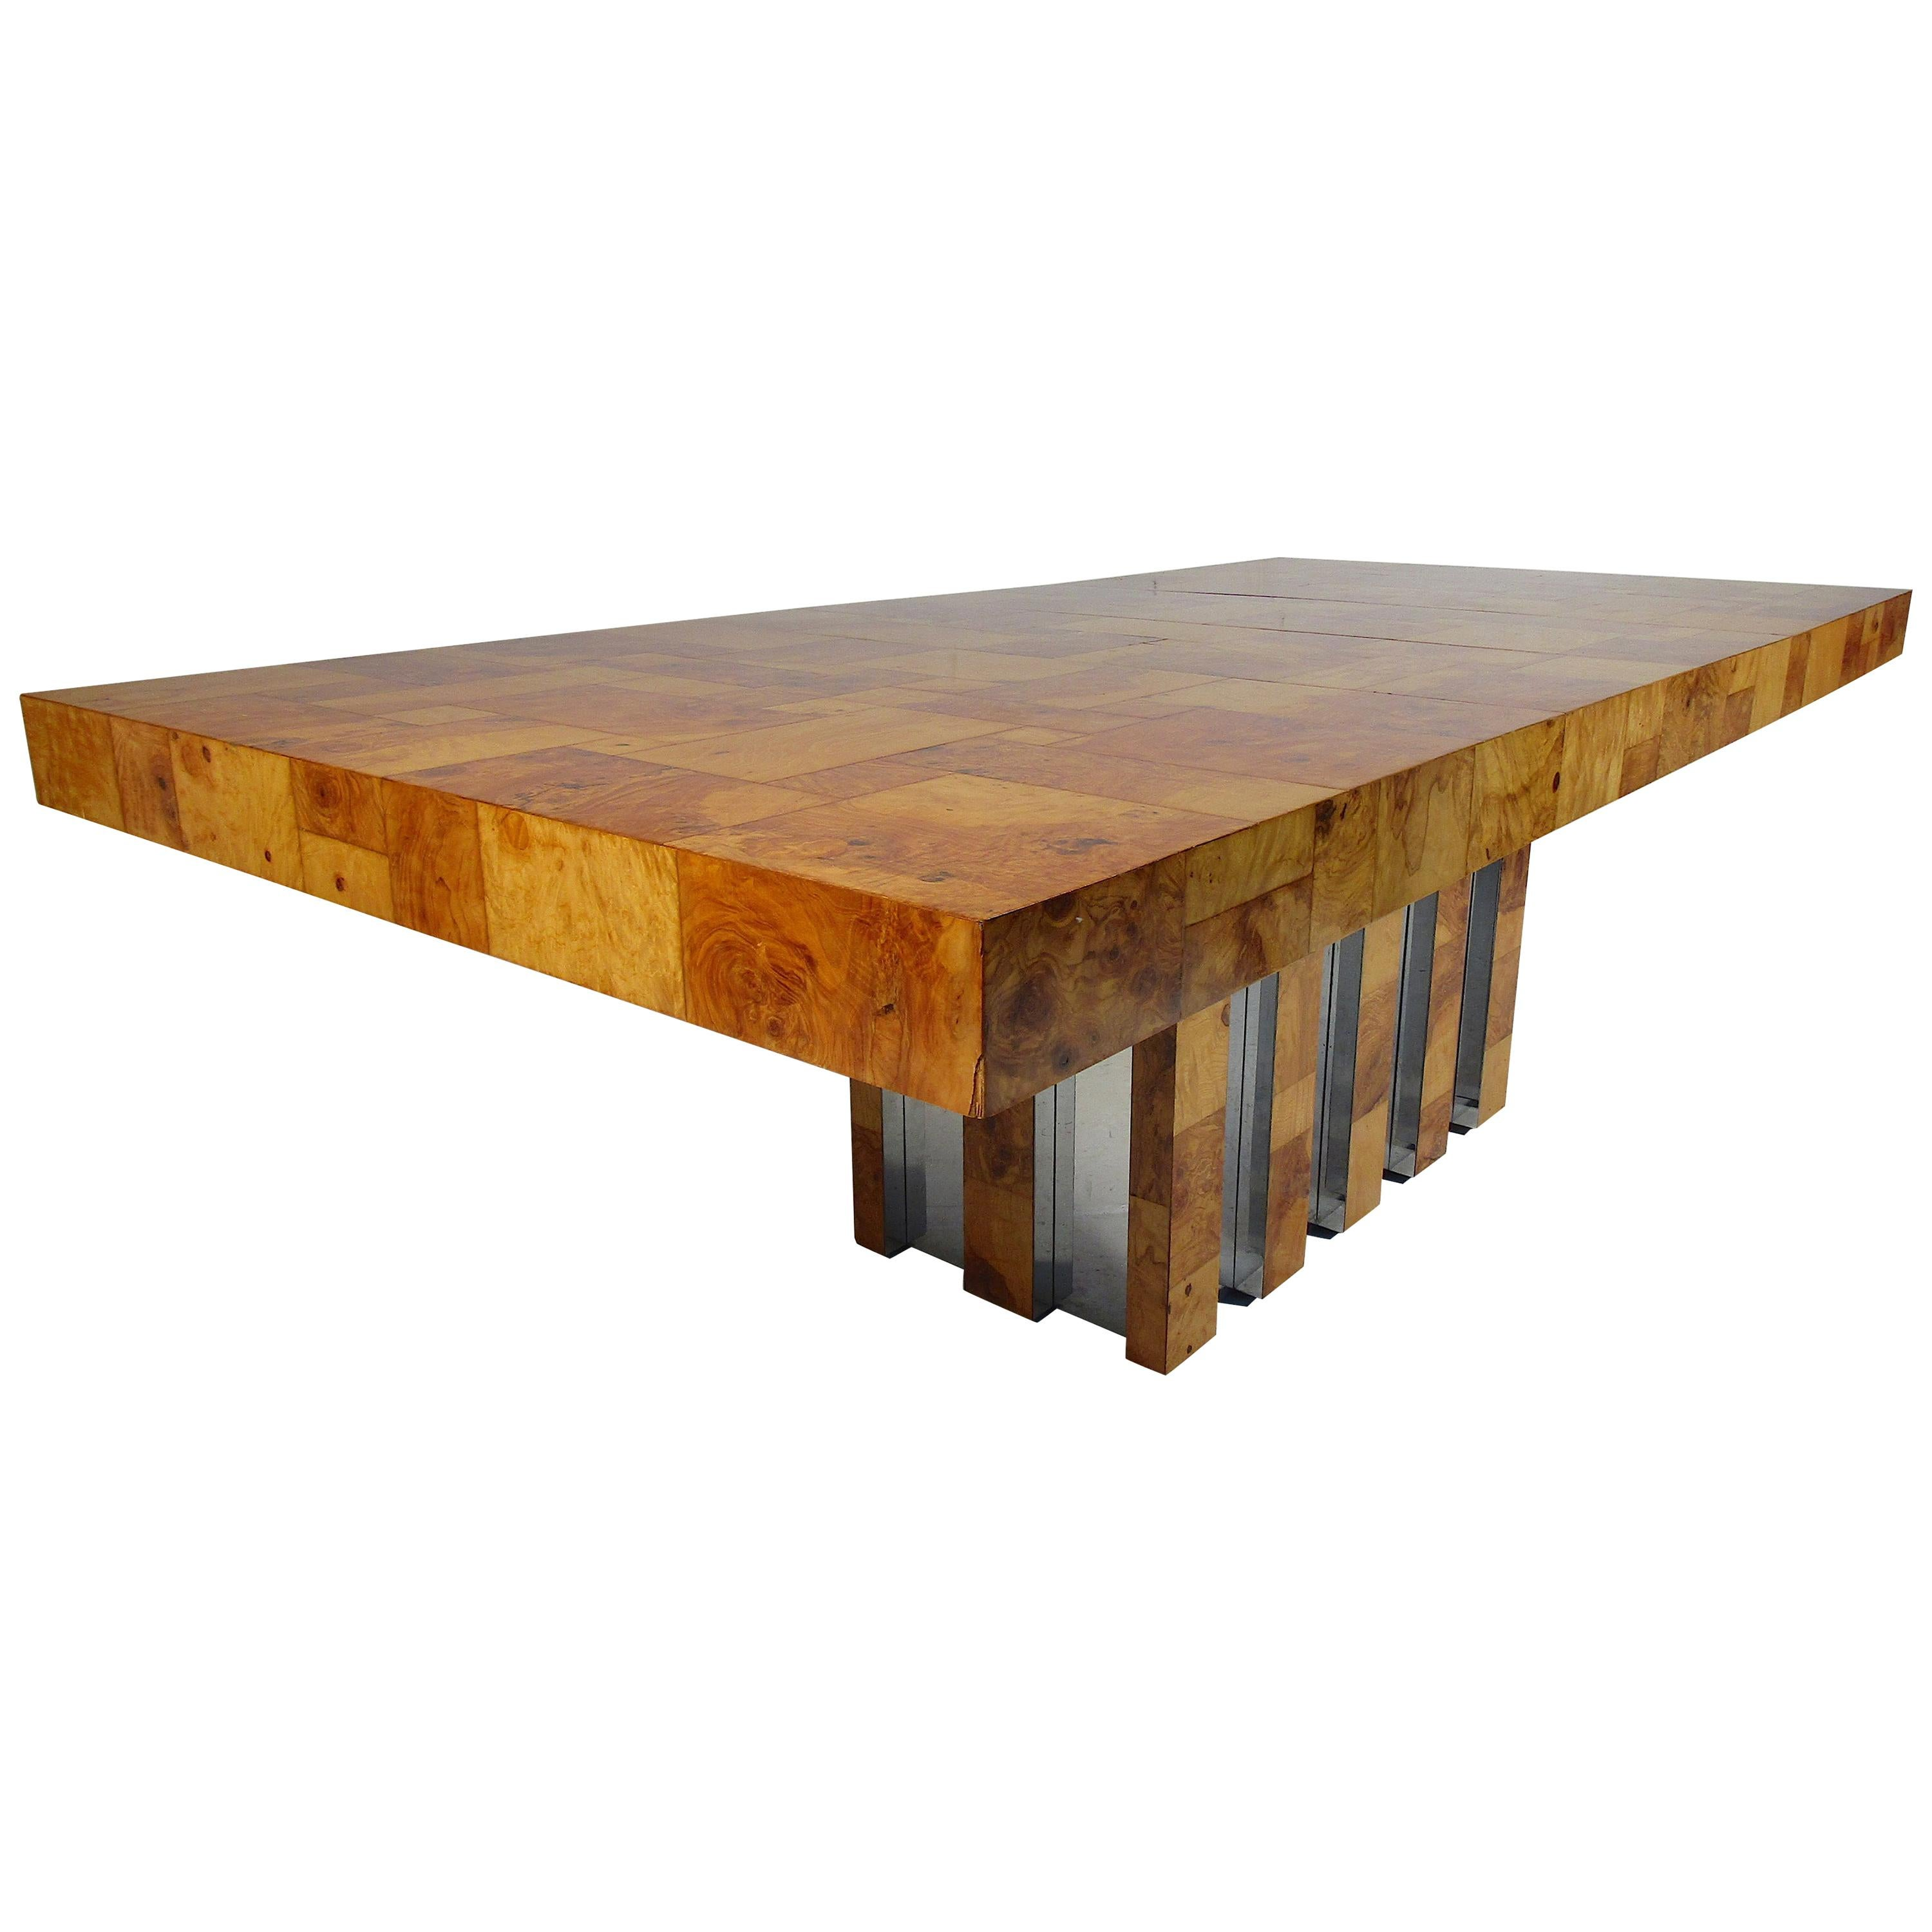 Midcentury Dining Table by Paul Evans for Directional